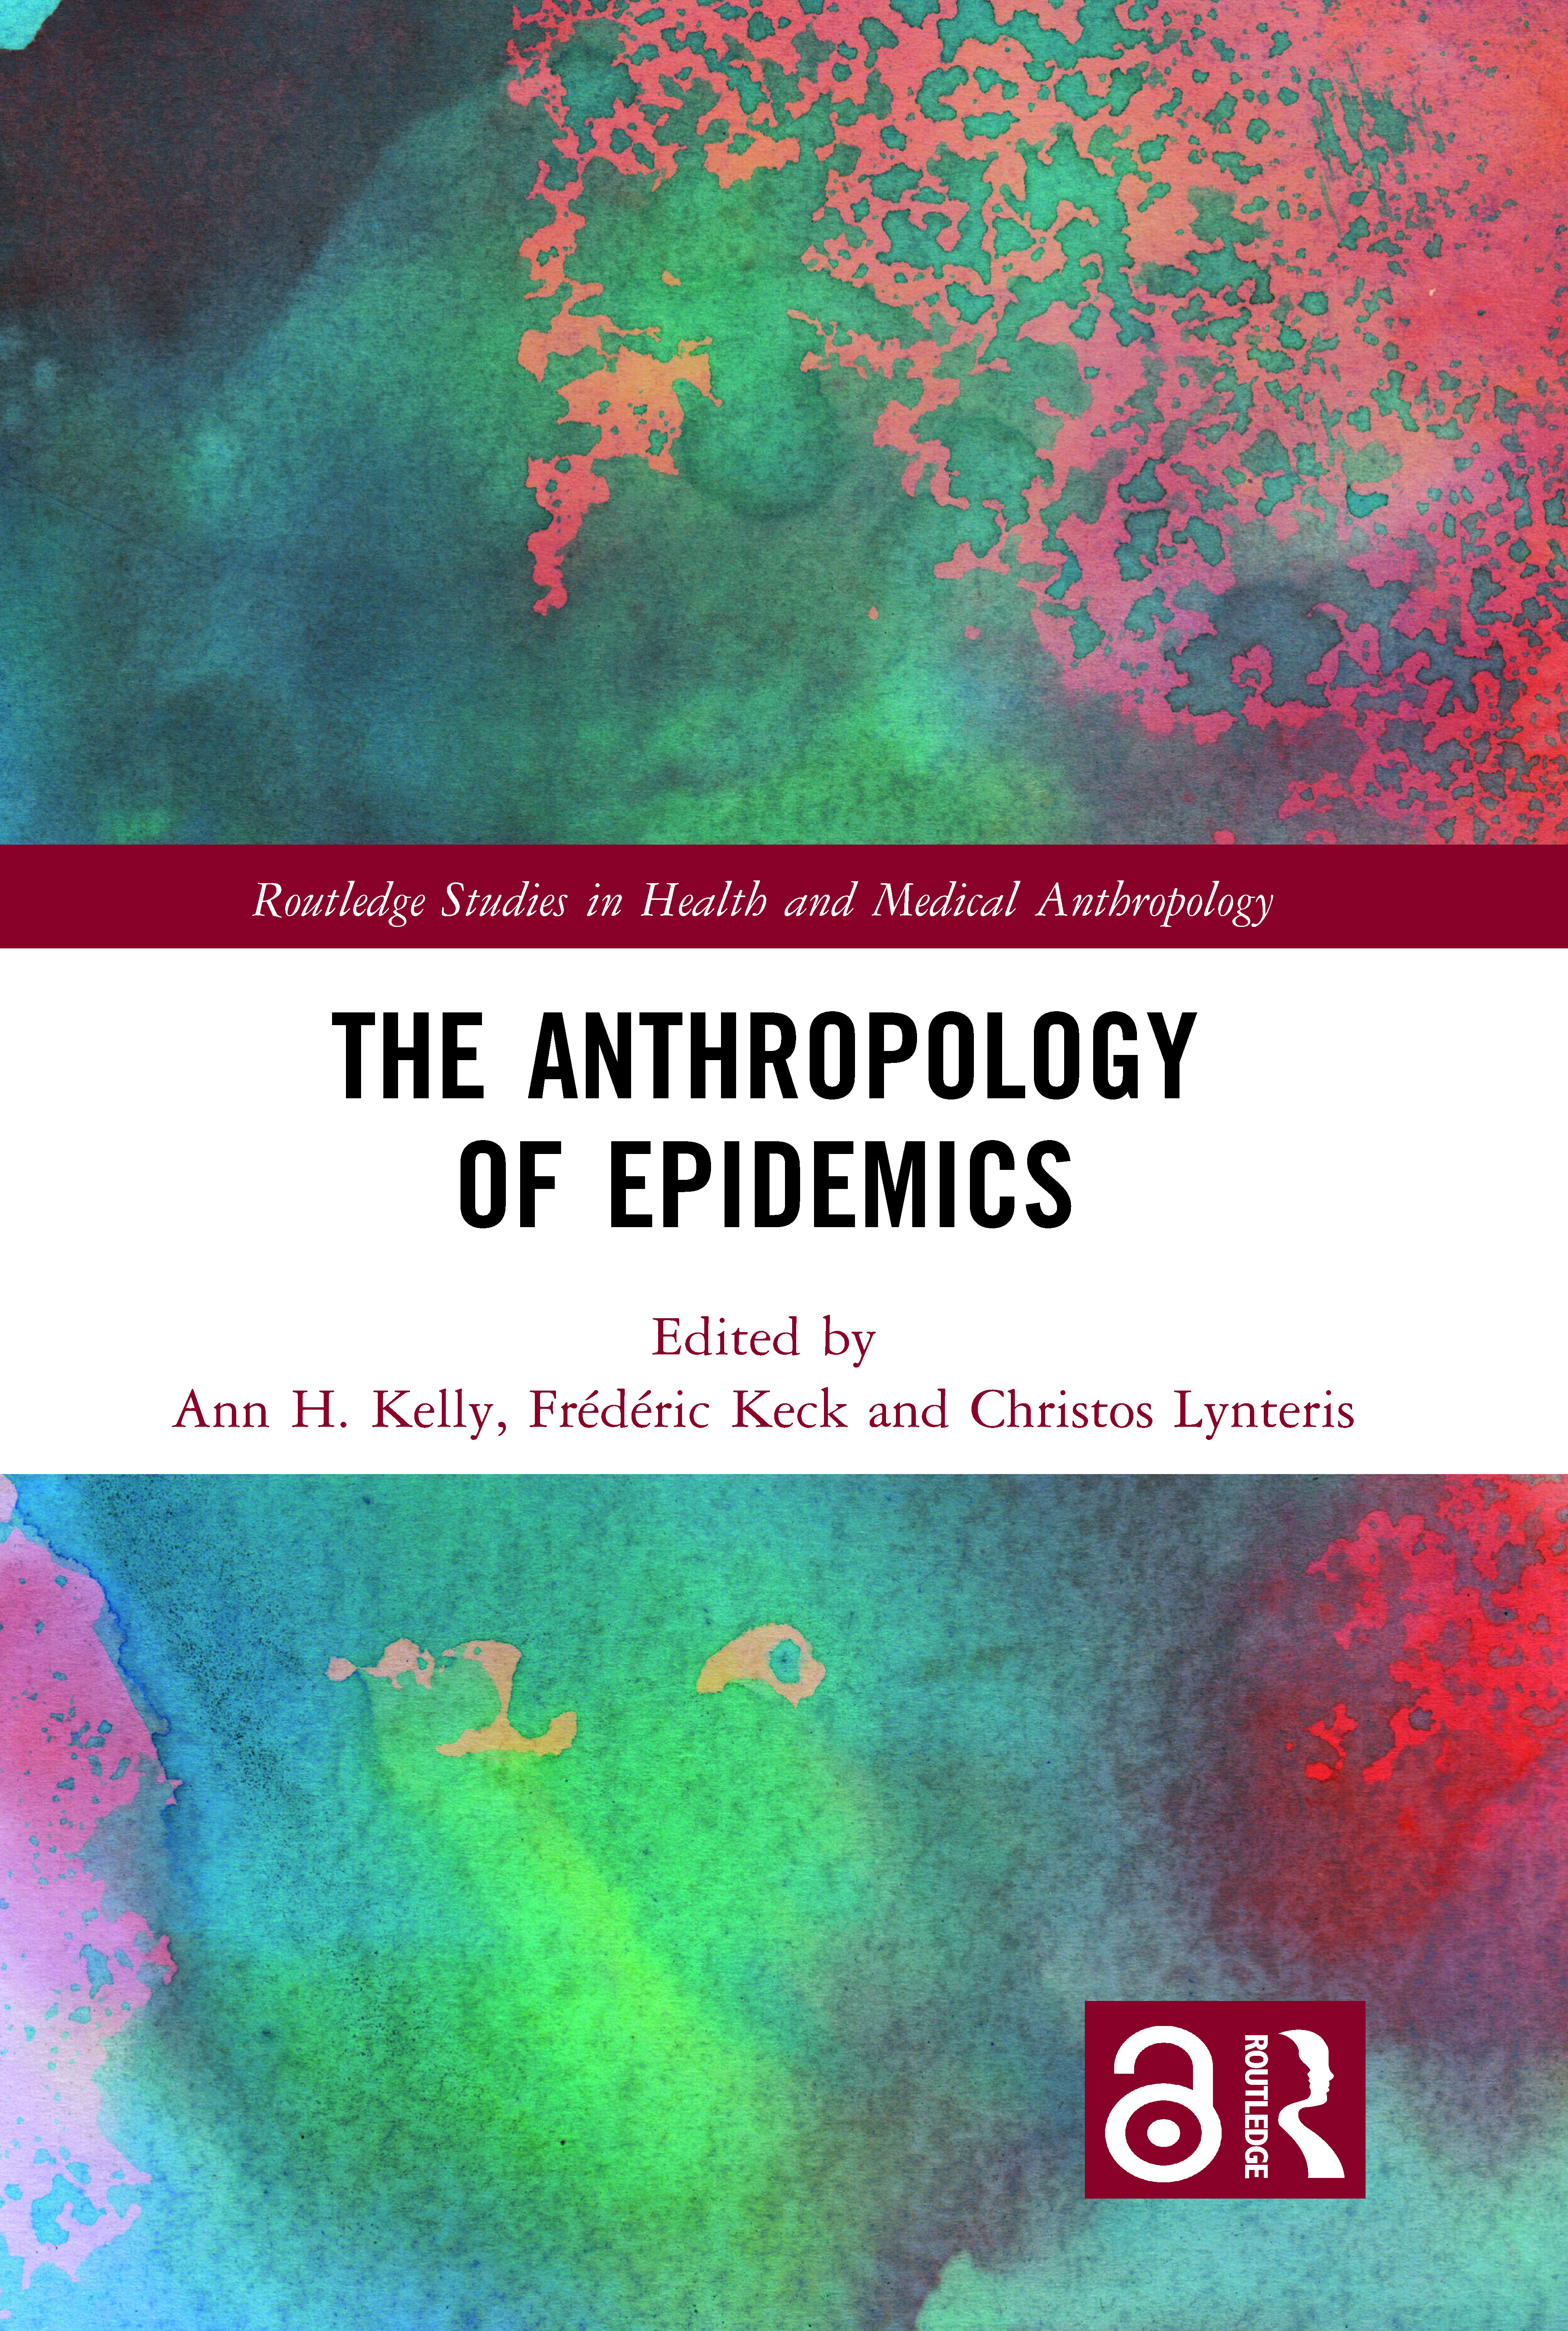 The Anthropology of Epidemics book cover